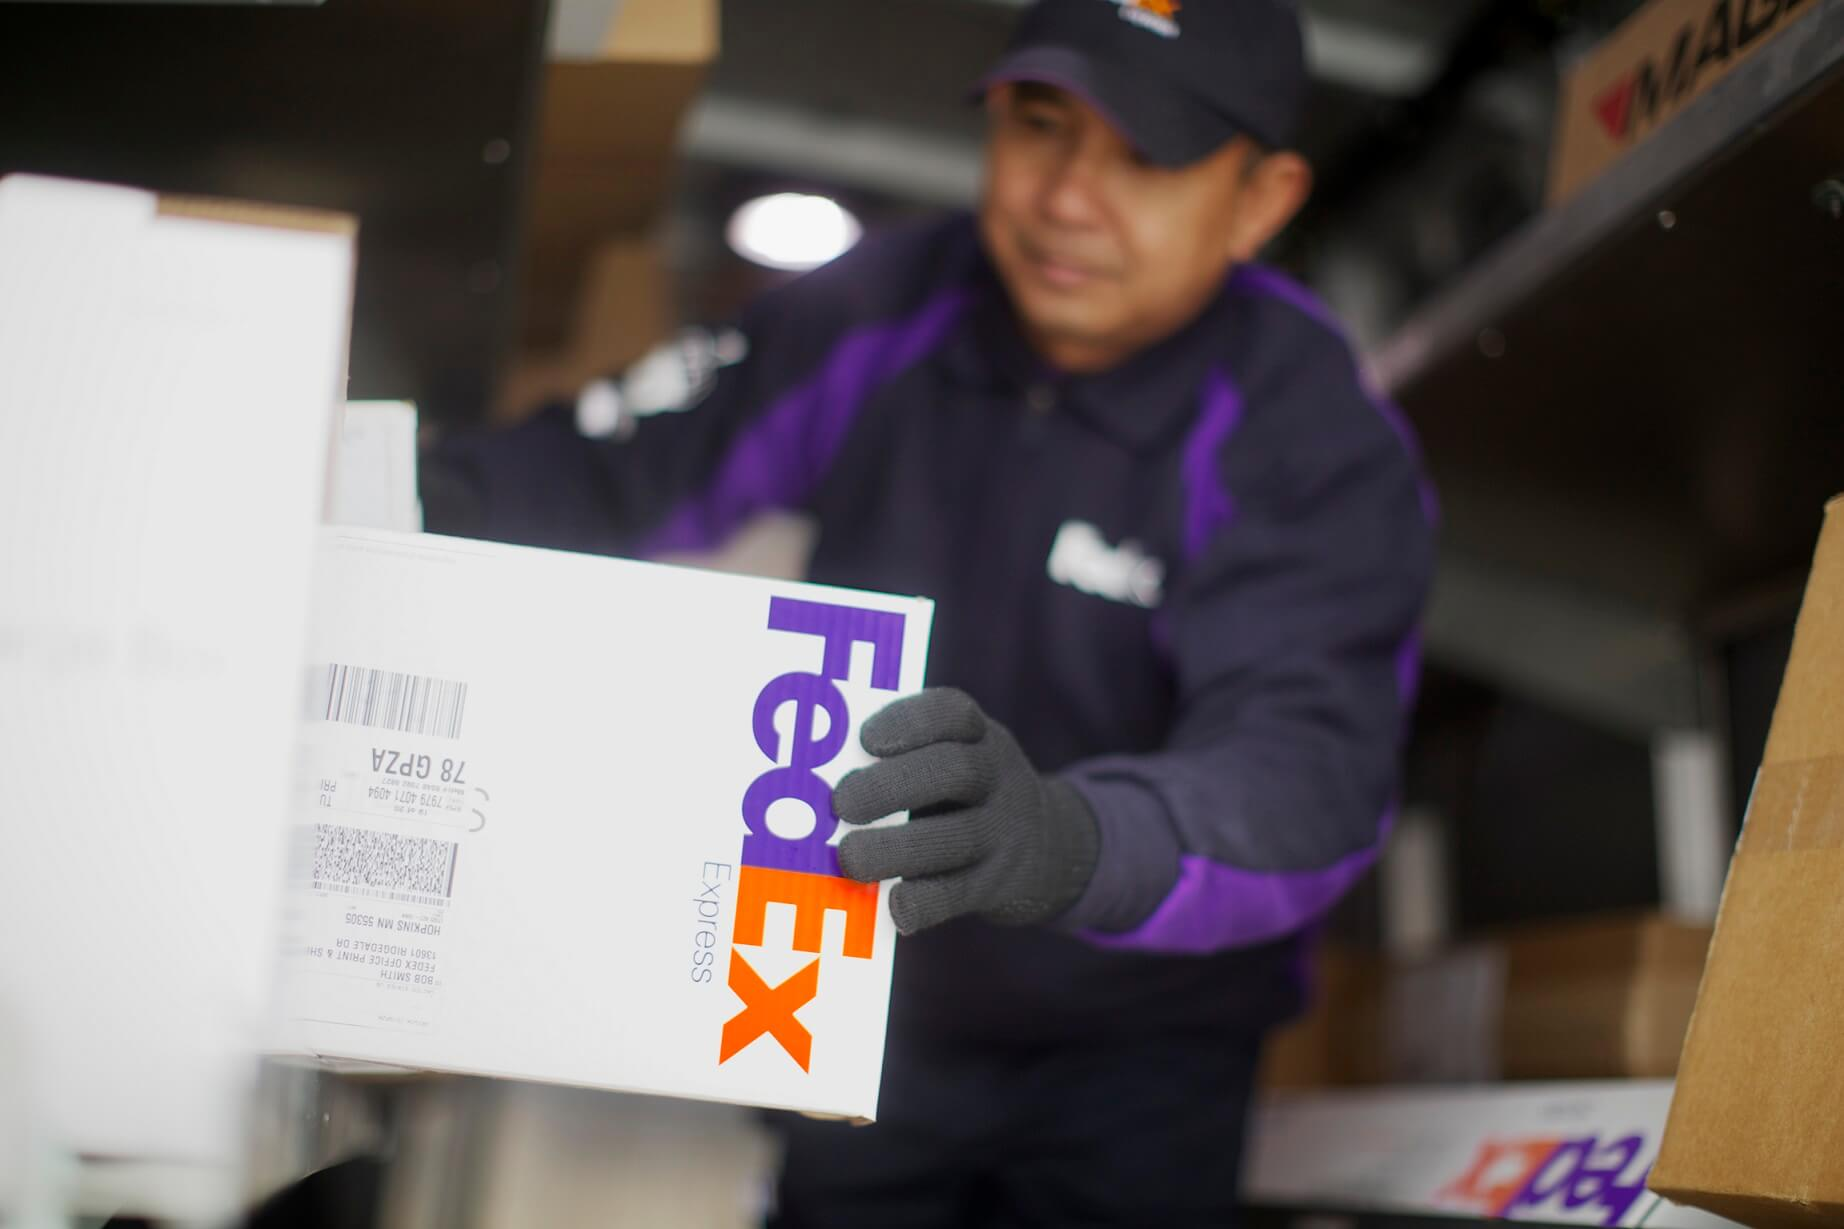 FedEx is ending ground shipping deal with Amazon this month